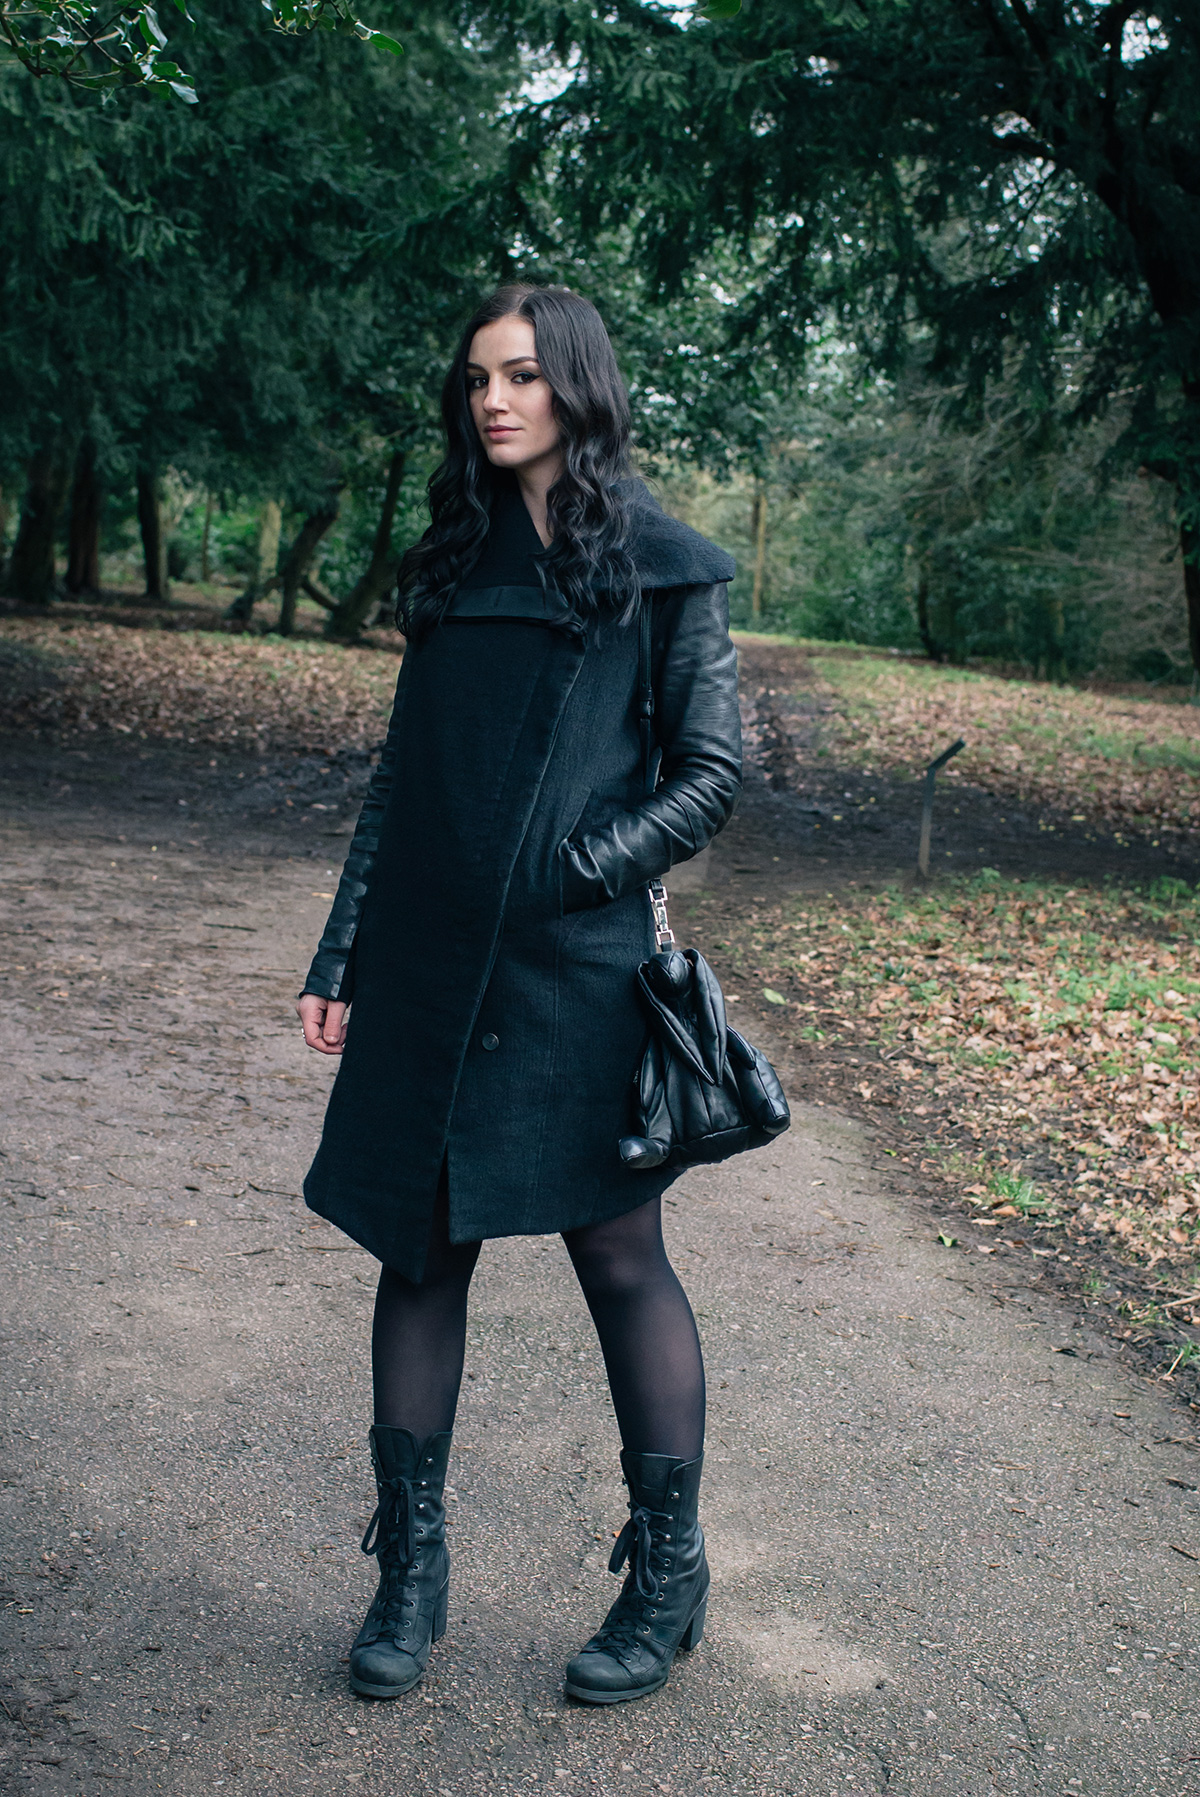 Fashion blogger Stephanie of FAIIINT wearing Helmut Lang Willowed wool and leather asymmetric coat, O.X.S. lace up boots, Christopher Raeburn Hare bag. All black dark style outfit.